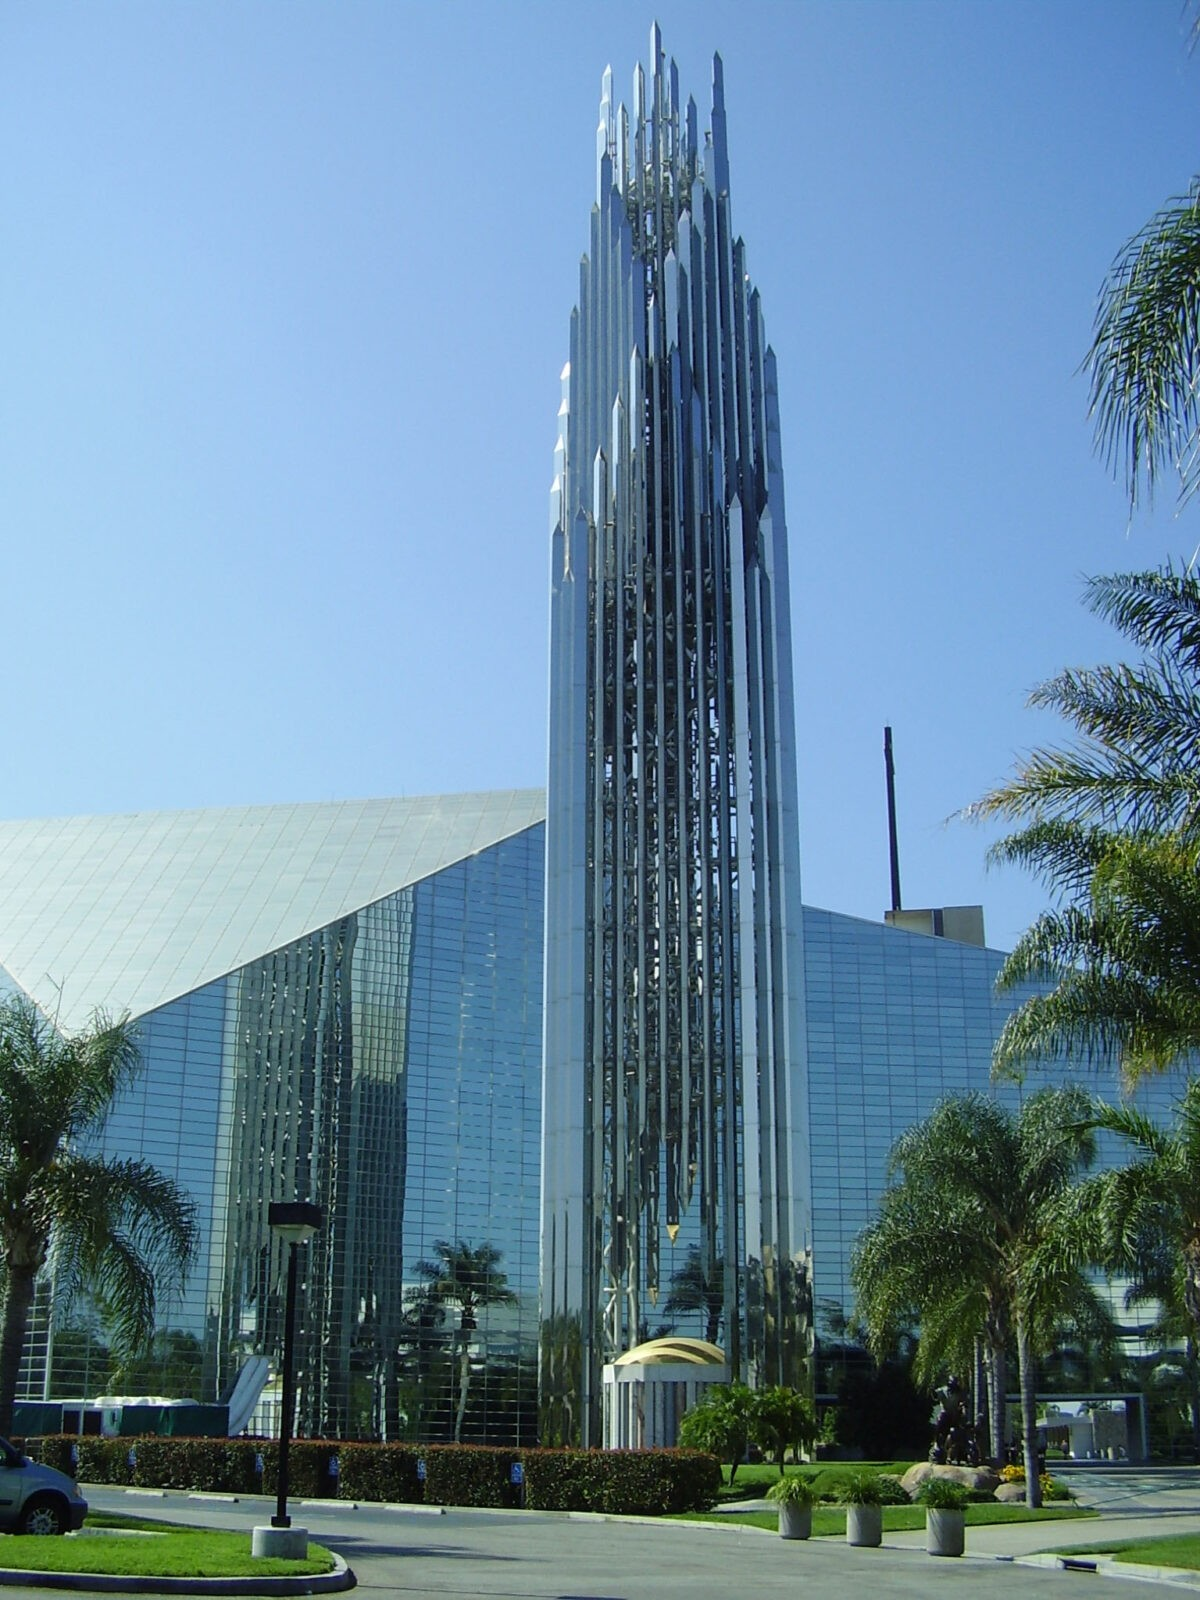 Crystal Cathedral is the most notable place in Garden Grove.